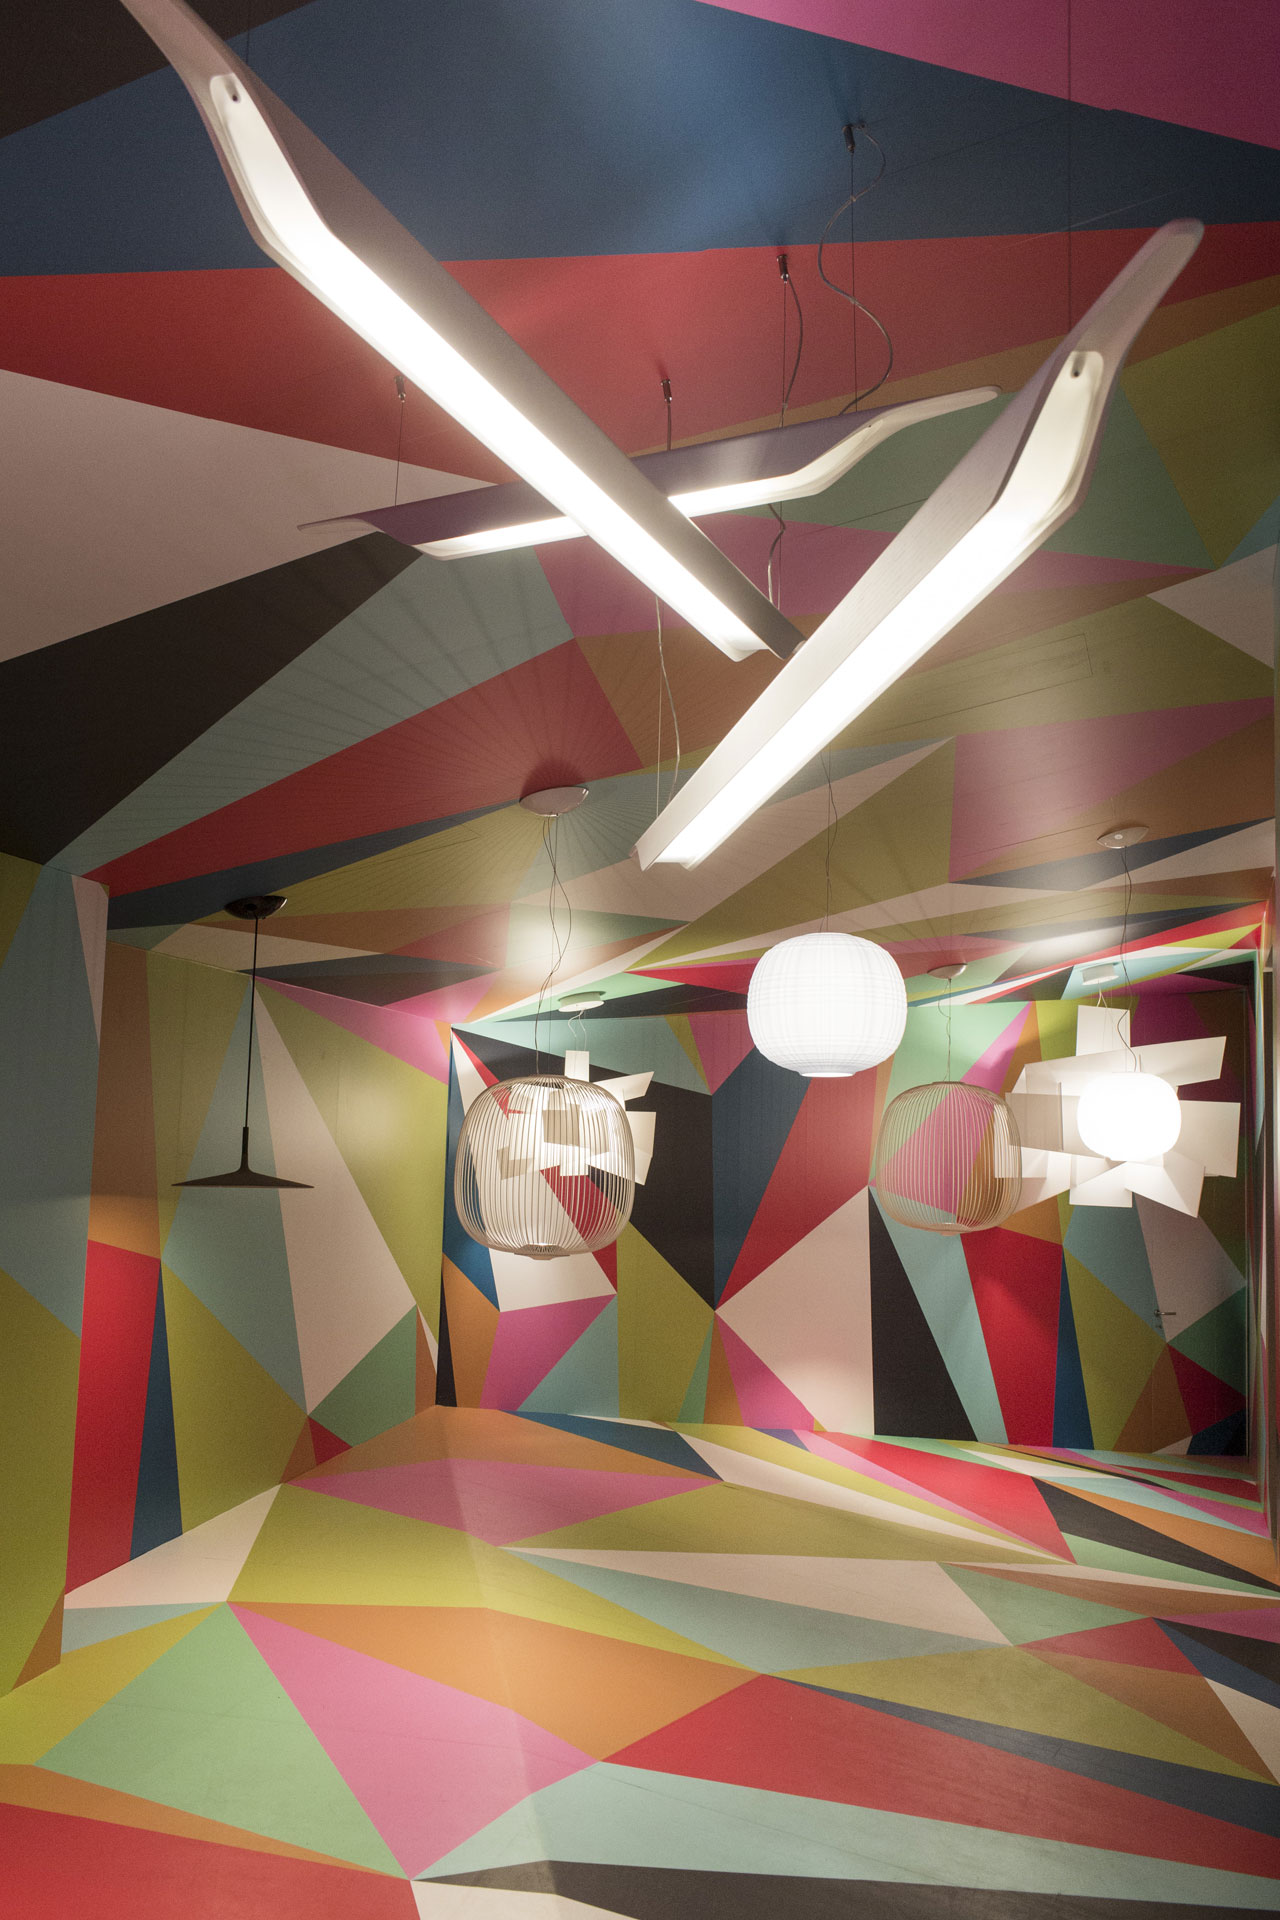 Designer/architect Ferruccio Lavianiplayed with scale in an Alice in Wonderland-like installation of Foscarini lamps and their giant versions.